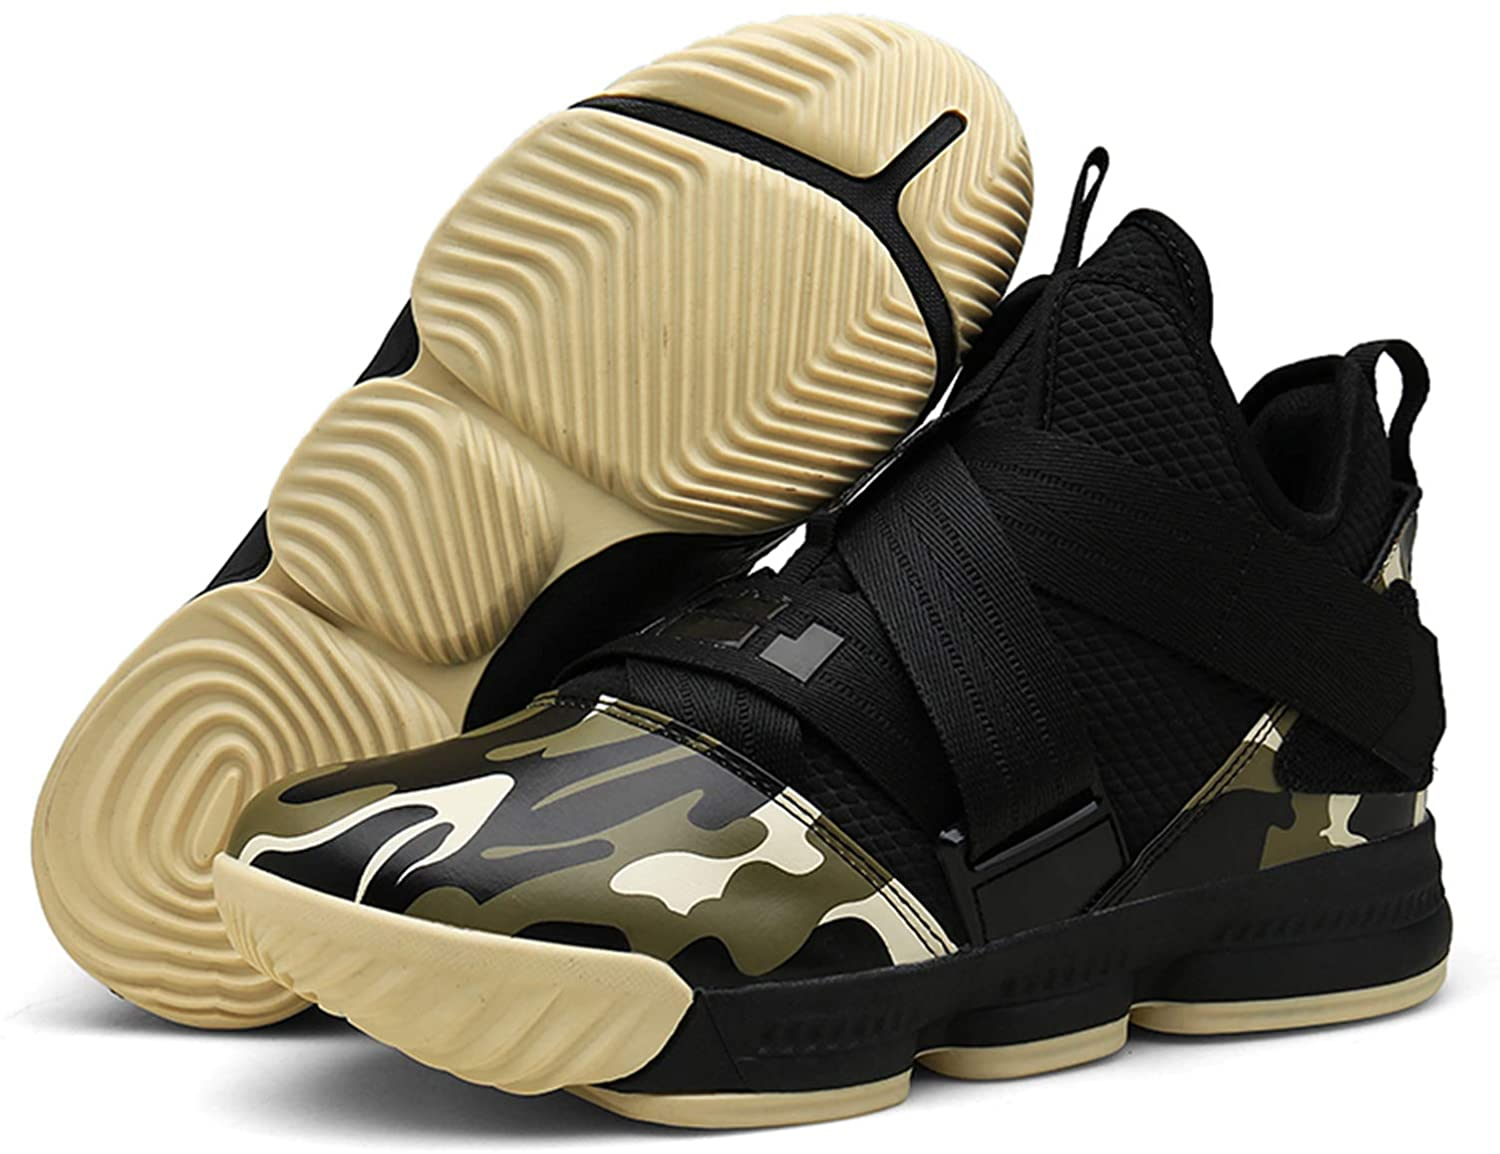 SINOES Men and Women Basketball Shoes Performance Shock Absorption Basketball Boots Trainer SneakersCushion Youth Student Basketball Shoes Basketball Boots